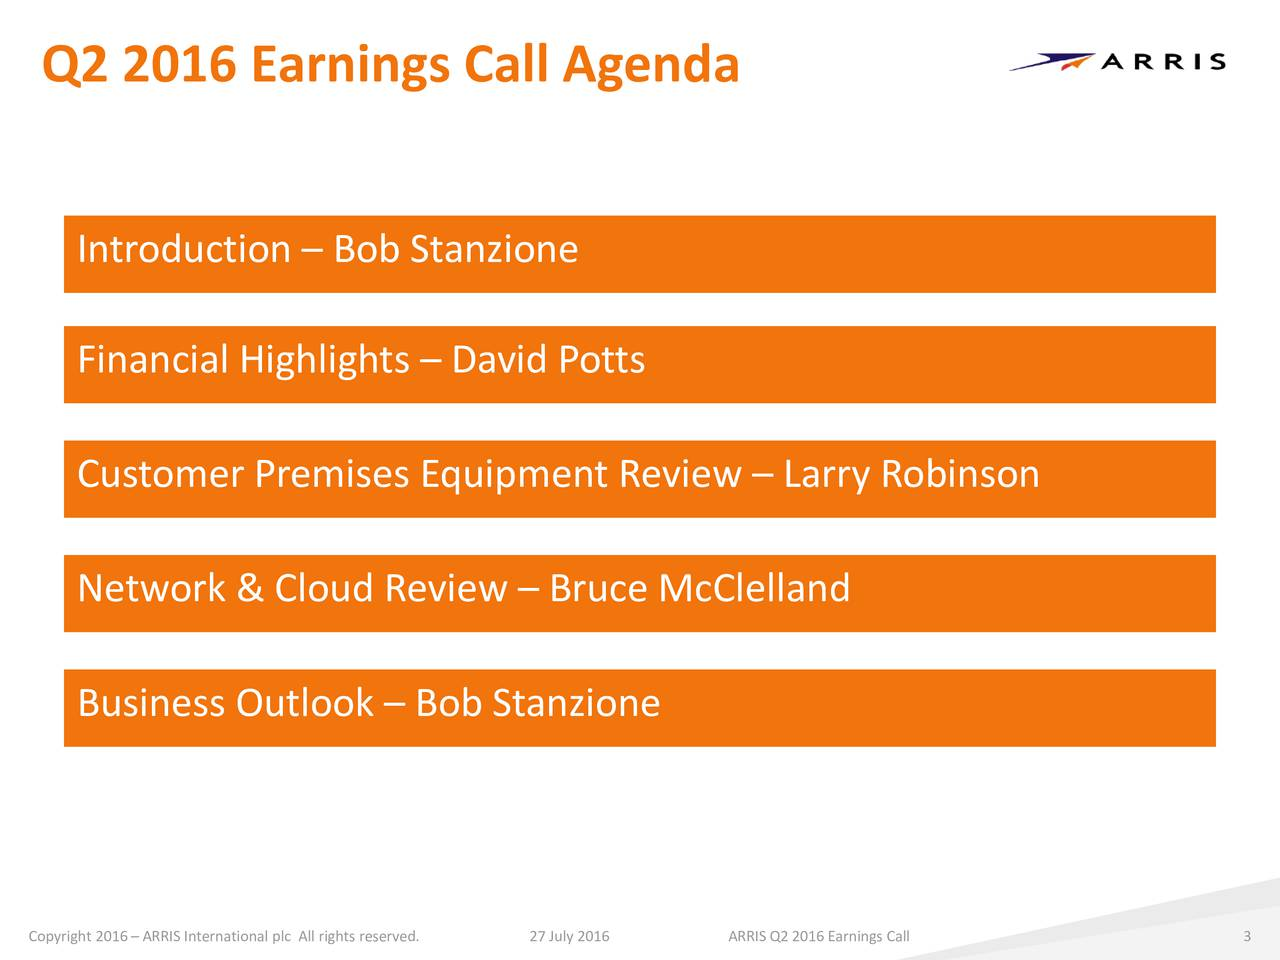 Introduction  Bob Stanzione Financial Highlights  David Potts Customer Premises Equipment Review  Larry Robinson Network & Cloud Review  Bruce McClelland Business Outlook  Bob Stanzione Copyright 2016  ARRIS International27 July 2016htsARRIS Q2 2016Earnings Call 3